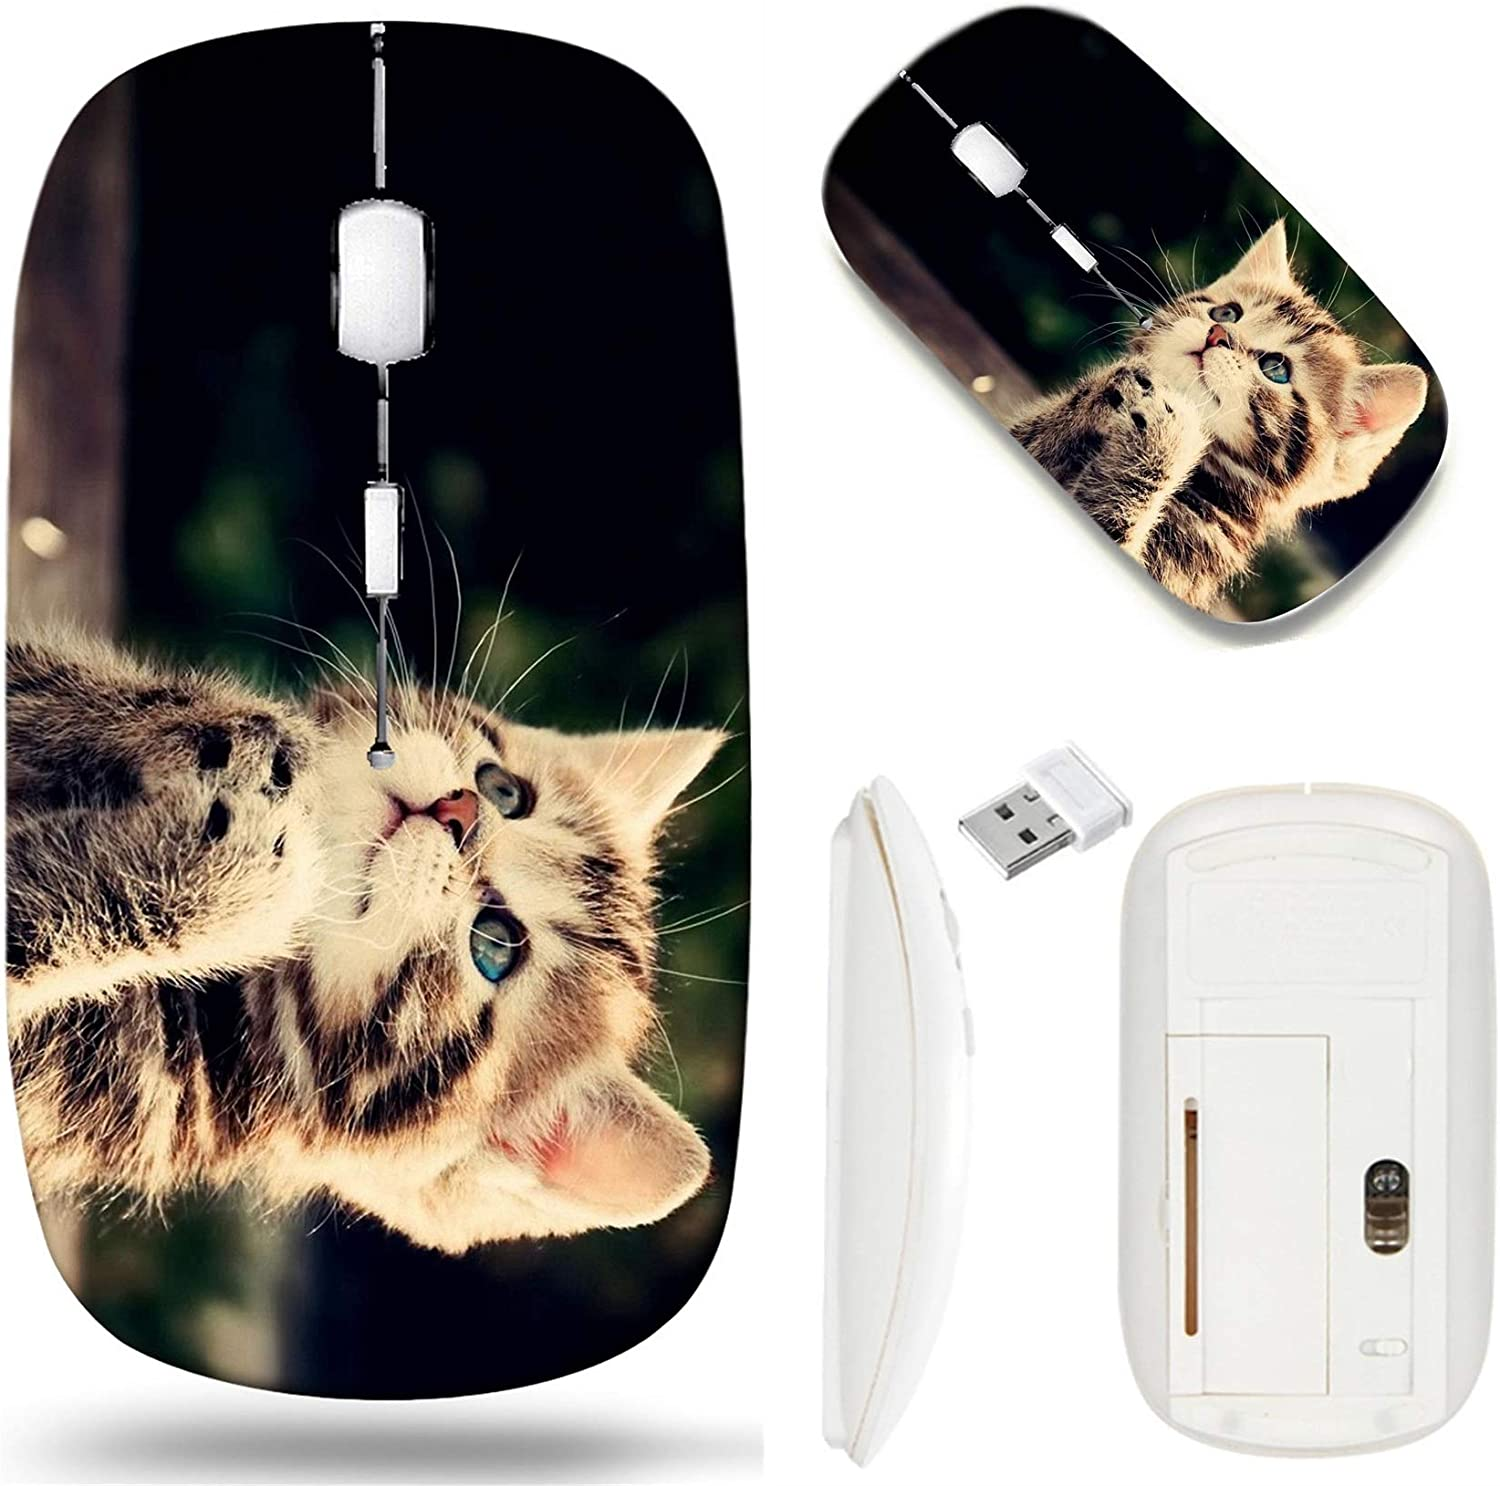 Wireless Mouse 2.4G White Base Travel Wireless Mice with USB Receiver, Noiseless and Silent Click with 1000 DPI for Notebook pc Laptop Computer MacBook Image of cat Animal pet Fur Kitten Kitty Cute e